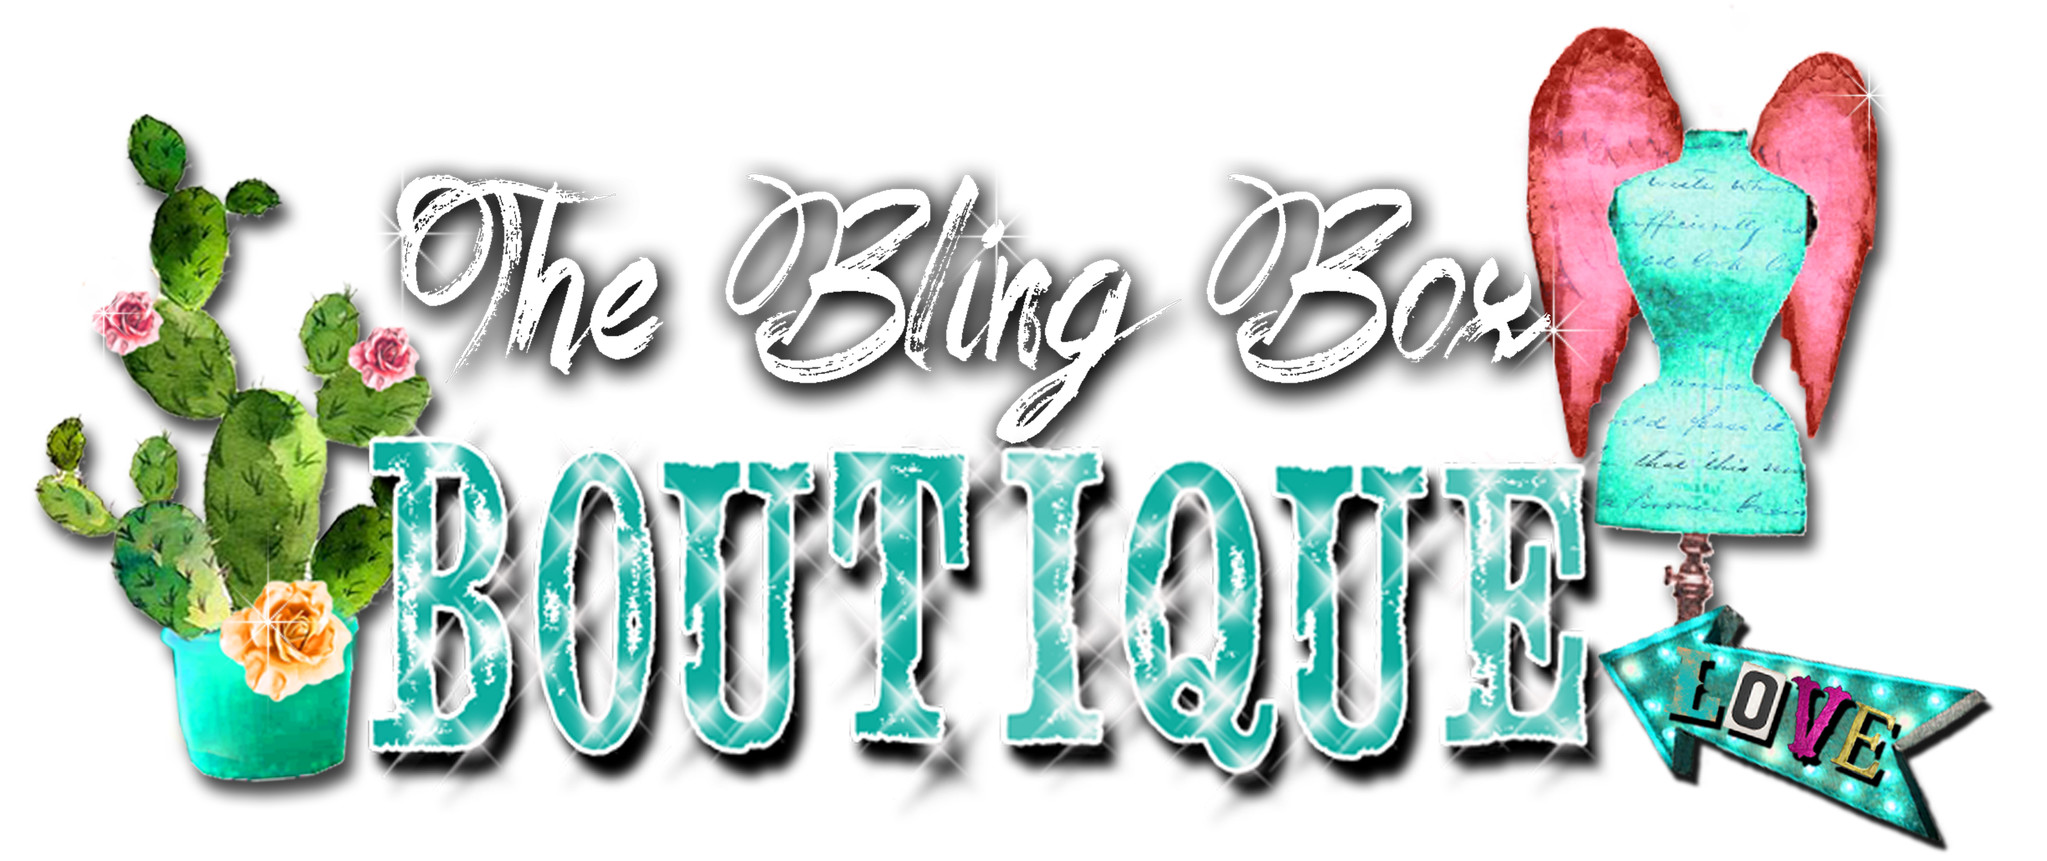 The Bling Box Boutique